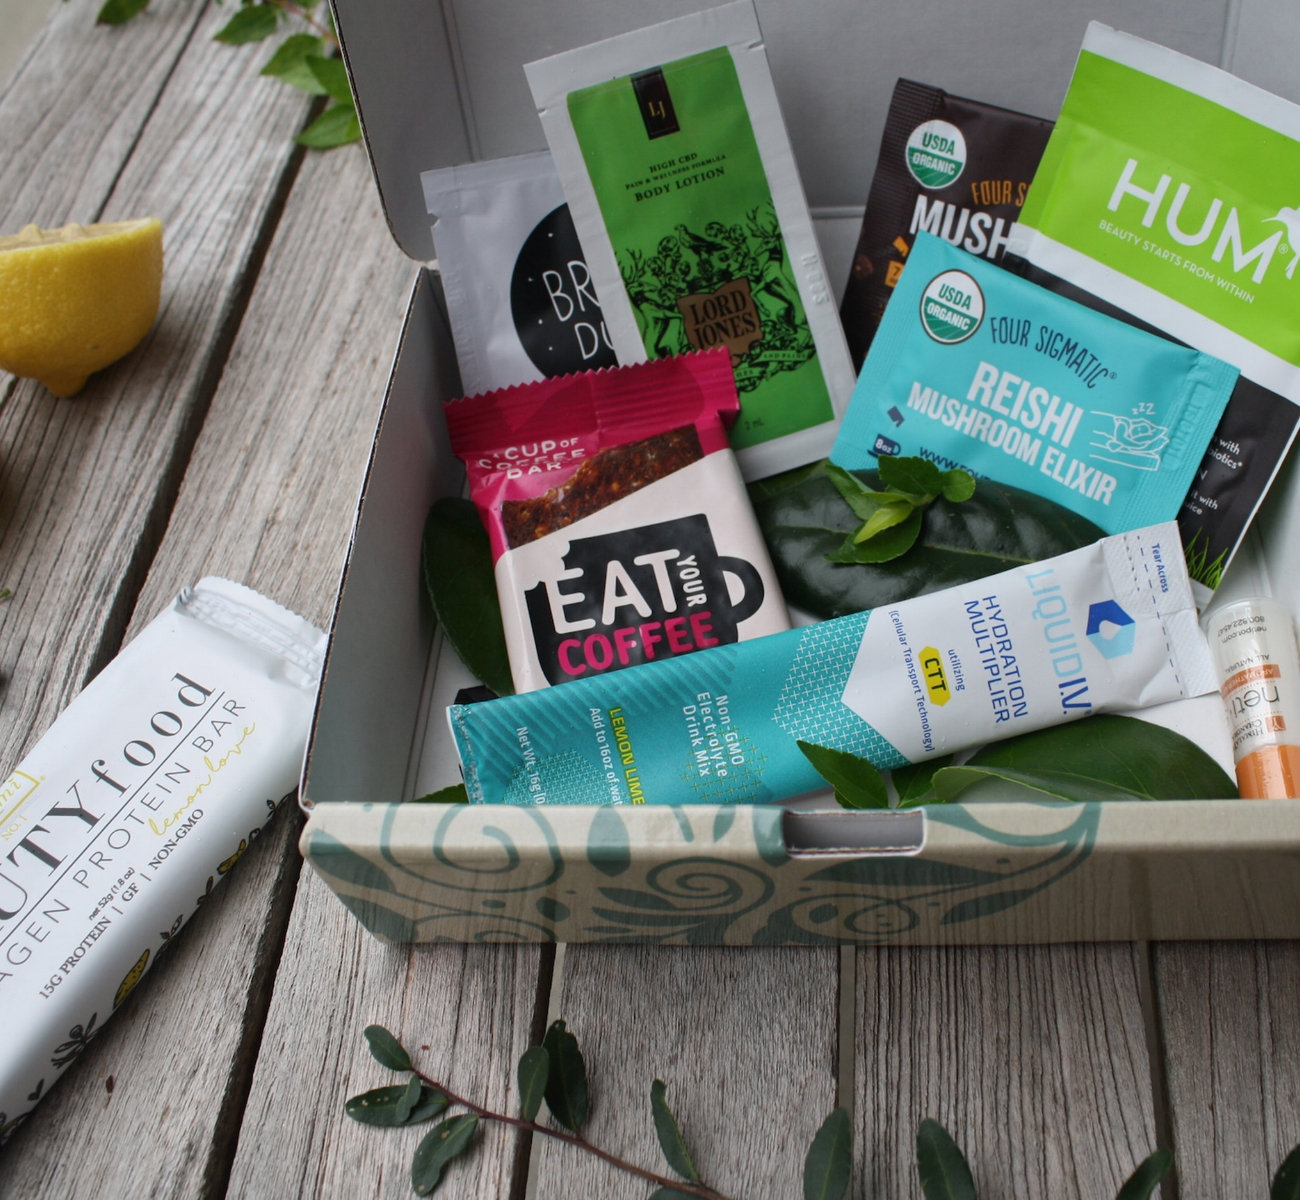 The best part? - We're constantly changing up what you'll get in your boxes.These carefully curated wellness kits will have a rotation of a handful of products. Zigii is constantly changing, and while we will feature staple categories like superfood powders and supplements that we consider